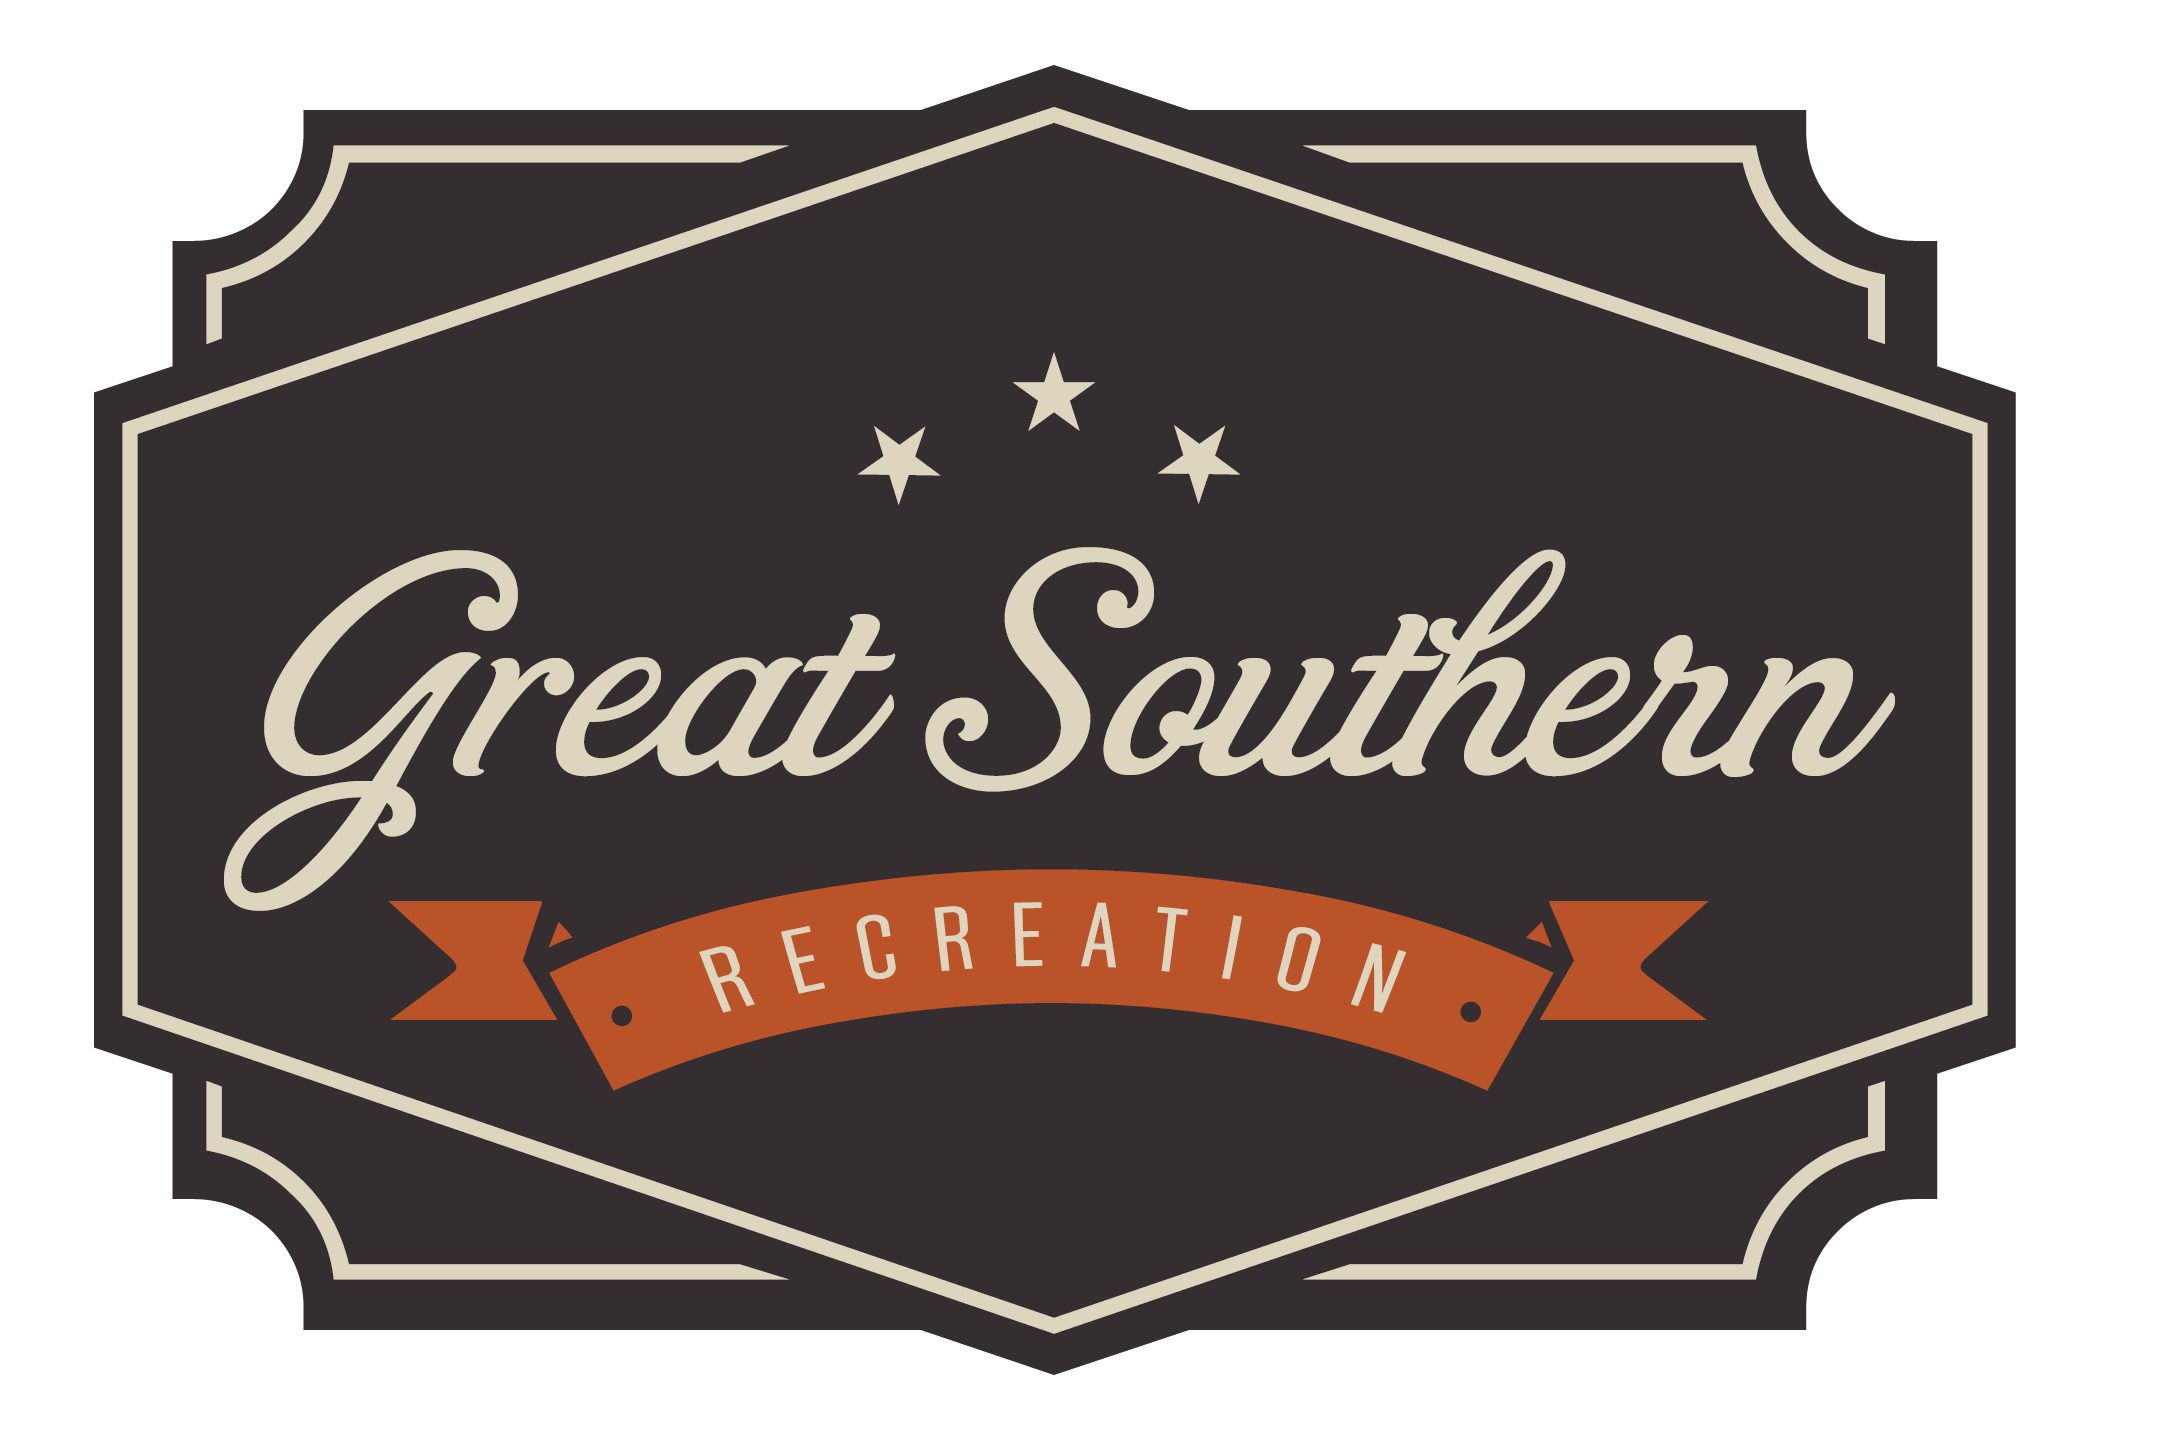 Great Southern Recreation